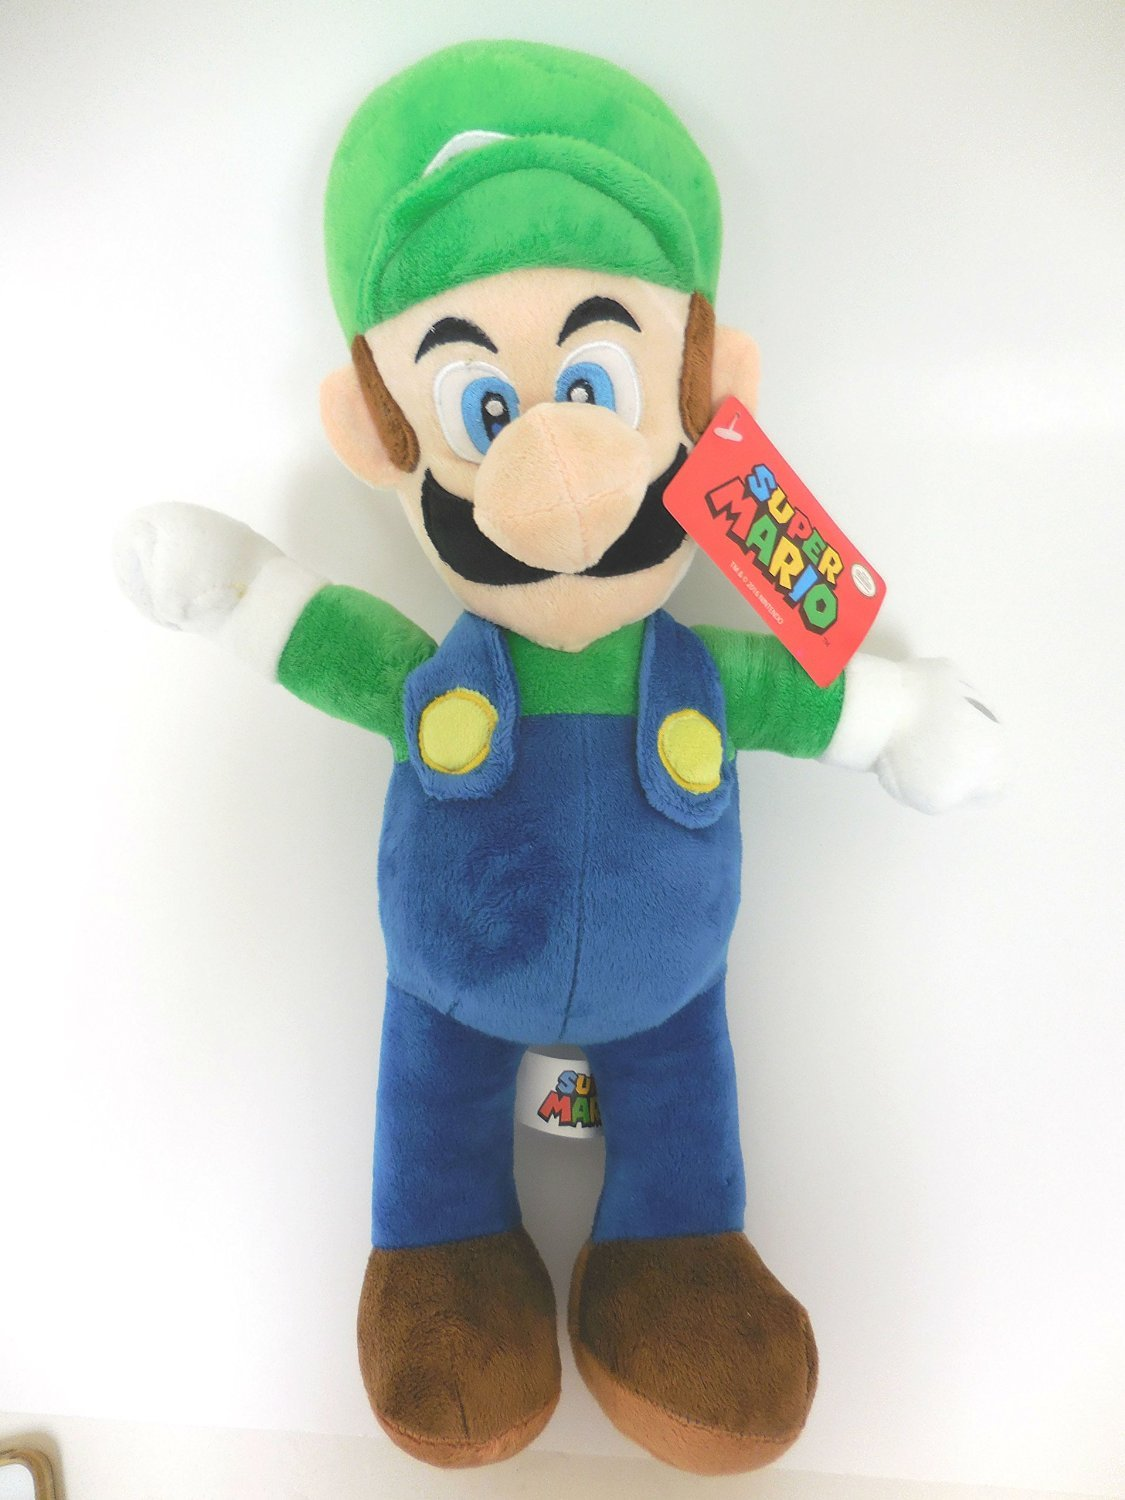 Nintendo Luigi Plush Doll 12 inches